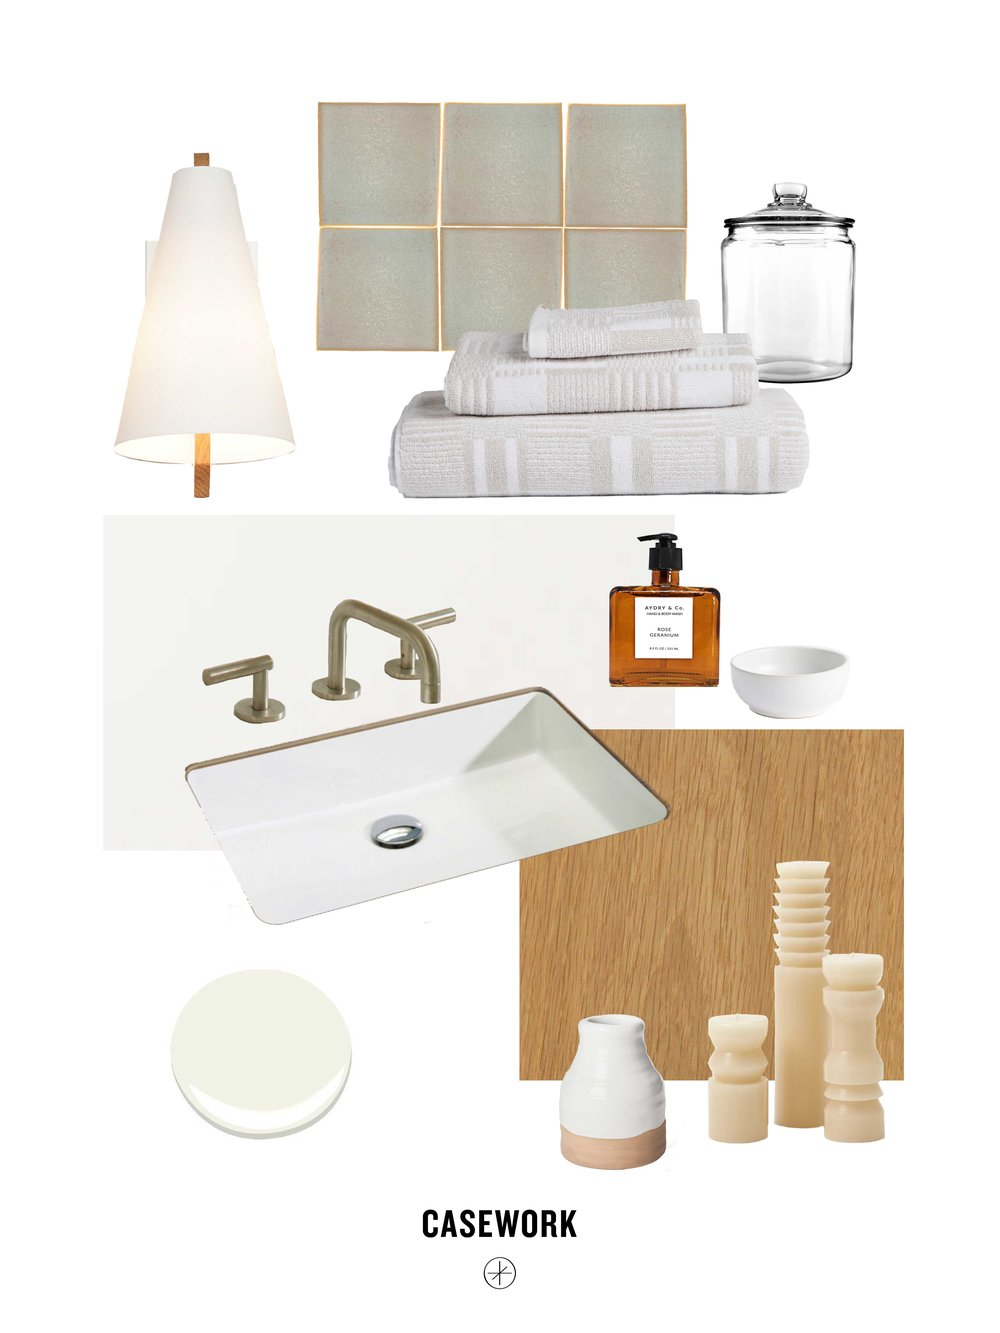 Sources:  Tub/Shower Tile  |  Bathtub  |  Sink  |  Faucet  |  Counter  |  White Oak Vanity and Mirrors - custom  |  Sconces  |  Bath Mats/Towels  |  Candles  |  Vase  |  Bath Salts Container  |